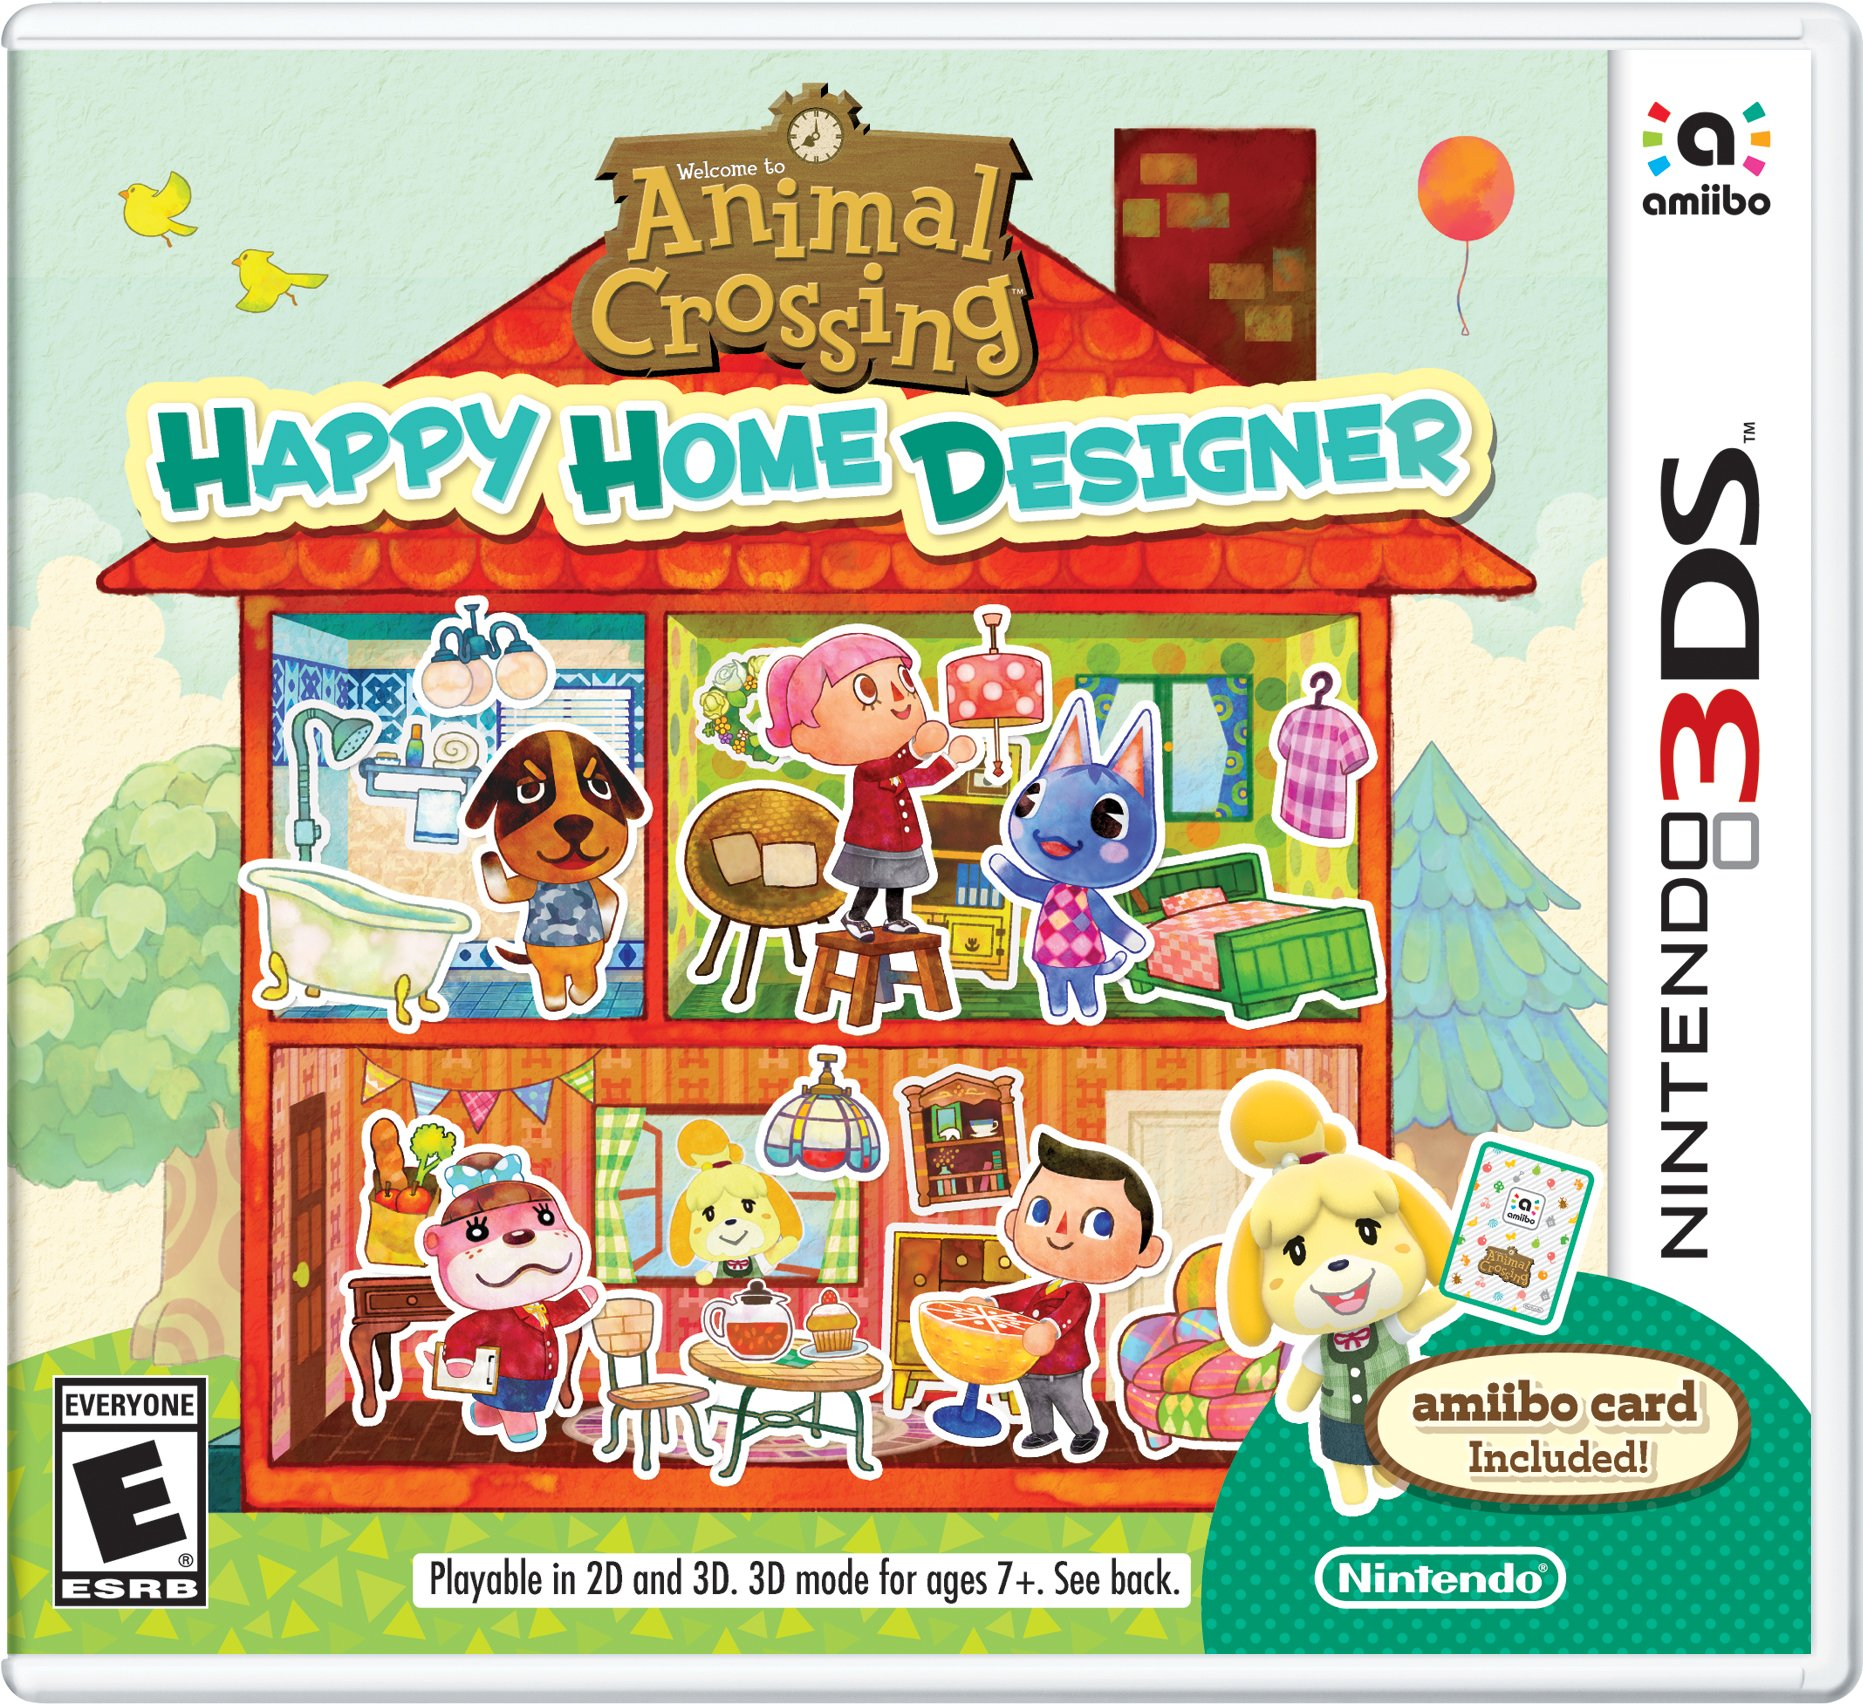 Animal Crossing: Happy Home Designer, Nintendo, Nintendo 3DS ... on home design apps for windows, home design art, home design glitch, home design fails, home design world, fashion games, home design toys, home design europe, home design categories, home design animation, home design graphics, home design software, home design coloring pages, home design photography, home design plans, home design ads, home design dishes, home design story, home design youtube channels, home design powerpoint,